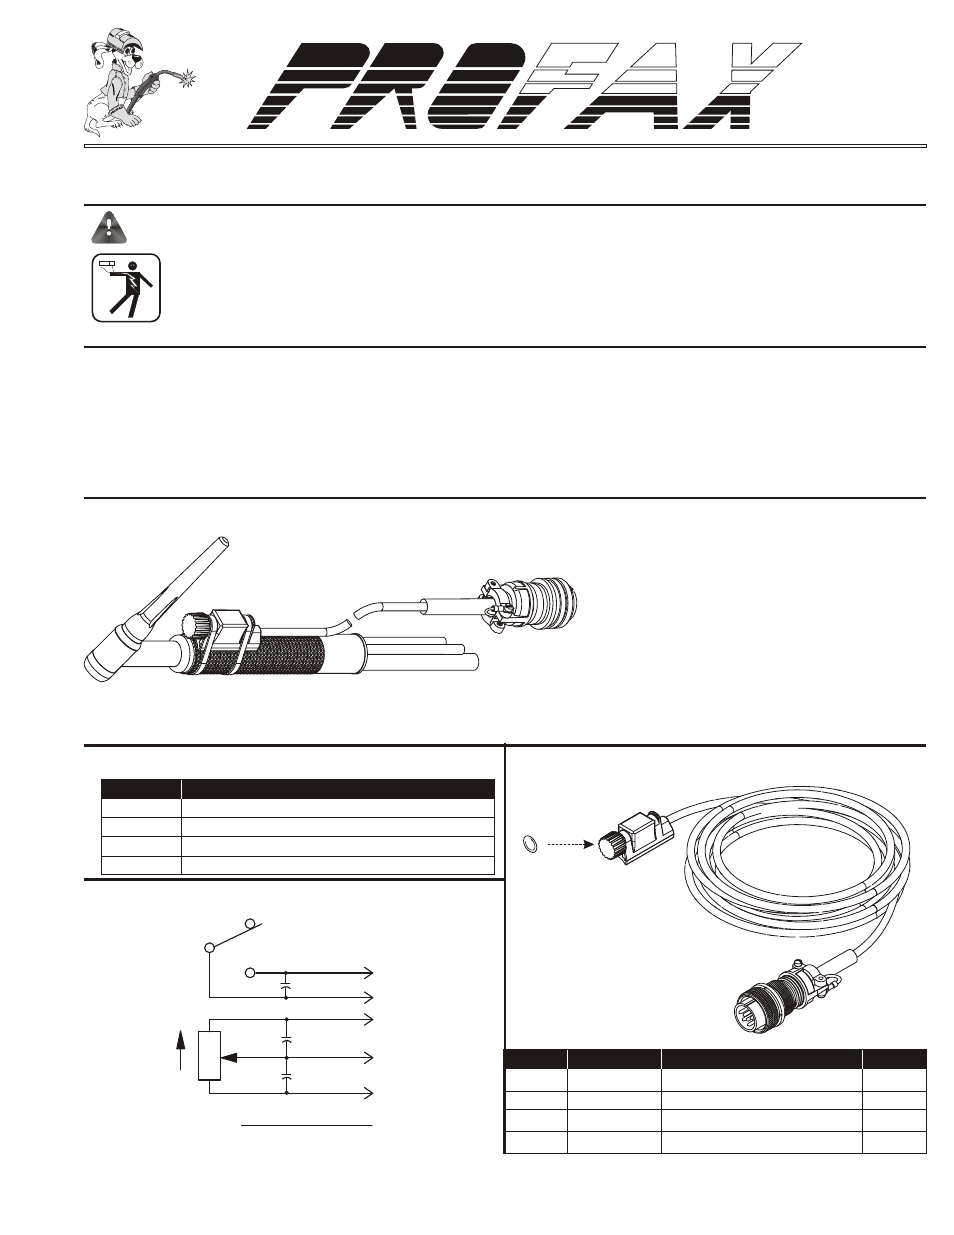 Lincoln Welder Invertec 275 Parts Profax Lftc 6 User Manual 2 Pages Background Image